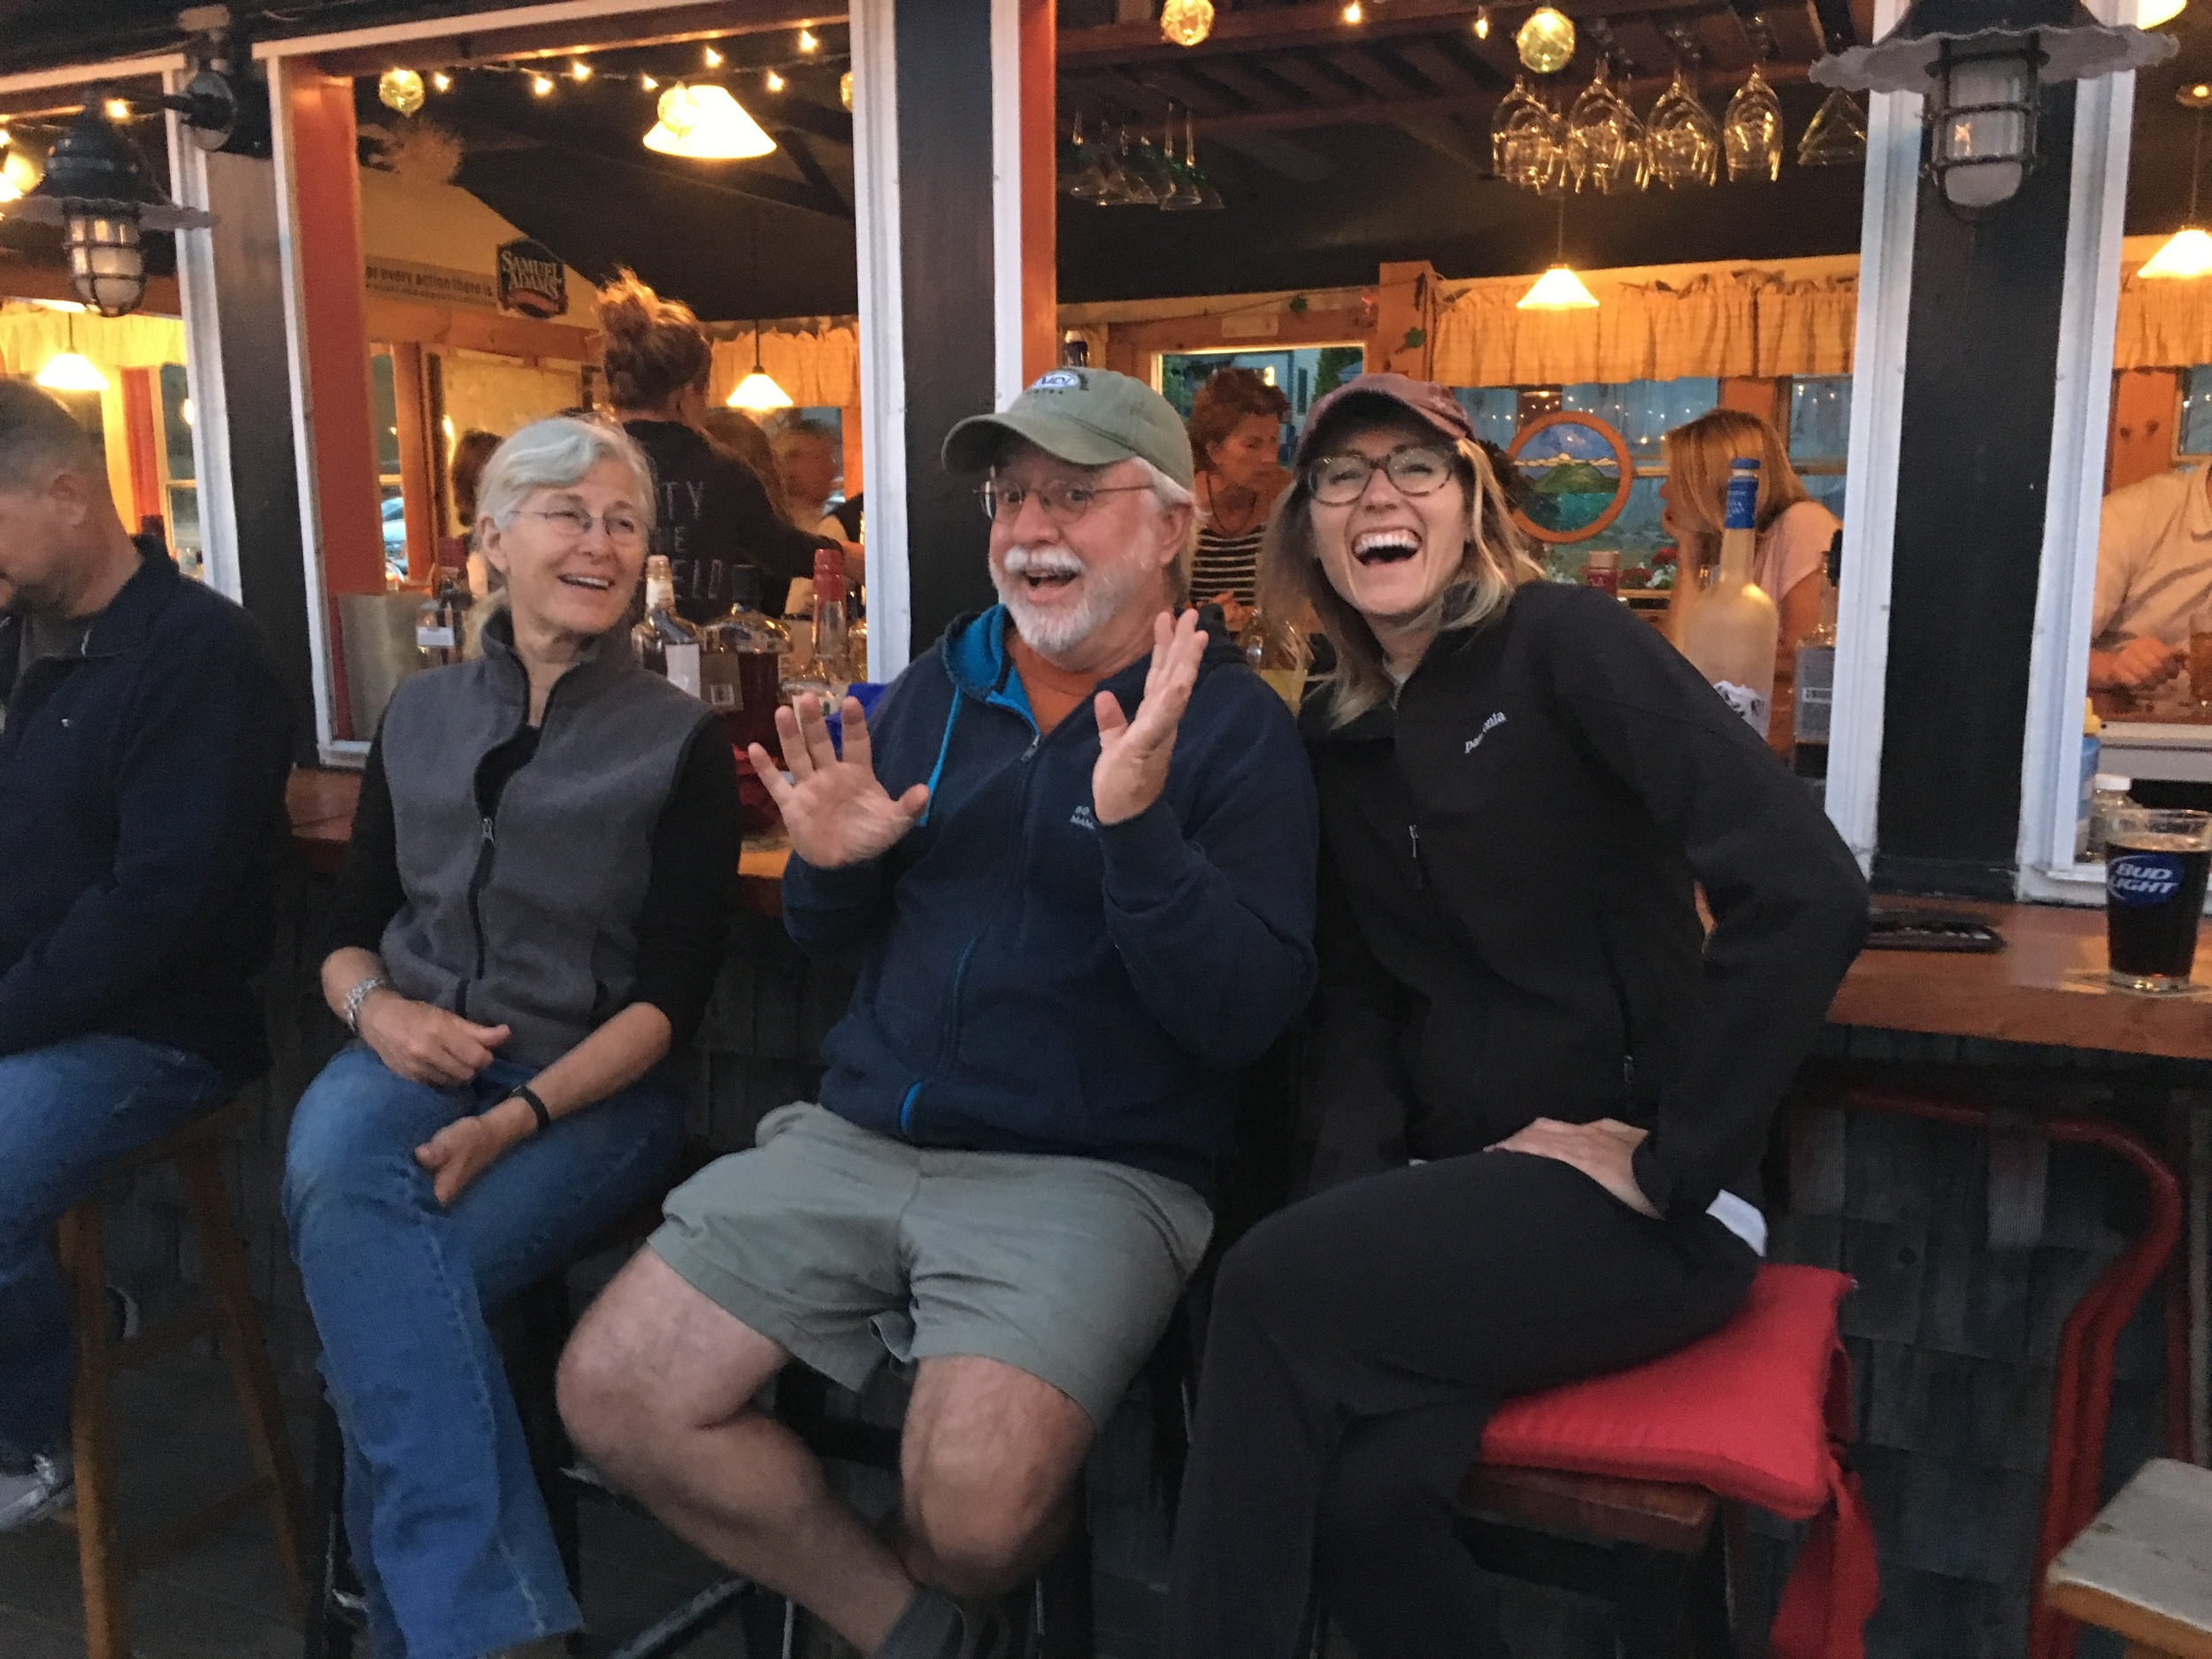 Mel and our gracious hosts in Mt. Desert, Maine. From L to R: Fran Leyman, Carey Kish and Me, Mel! We're waiting for the fireworks!